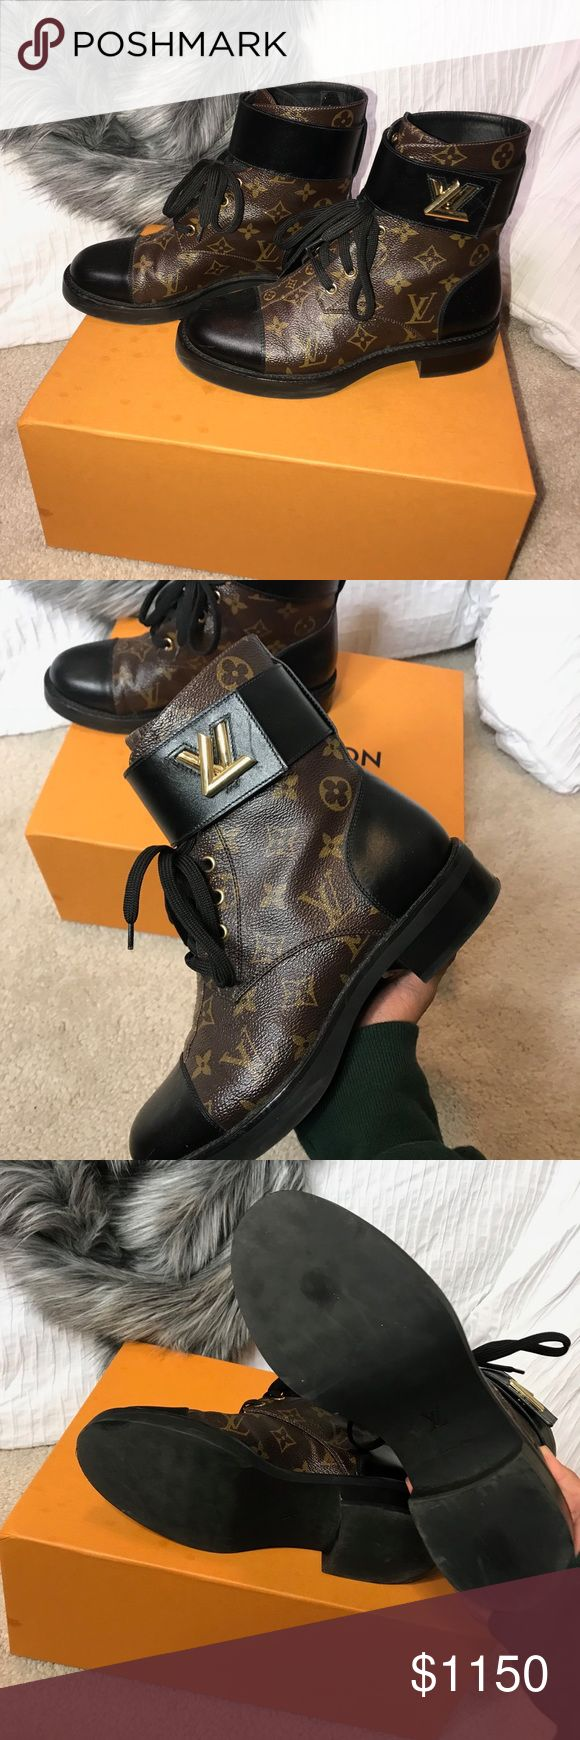 Authentic Louis Vuitton Wonderland Boots 100% authentic. Had this for awhile but I just didn't get to wear is as much so I'm hoping to sell this to someone who will wear them💖  size 38 which is a 8 (The length of my foot is 11 inches) if you have any questions please ask! Comes with extra laces and dust bag and original packaging Louis Vuitton Shoes Combat & Moto Boots